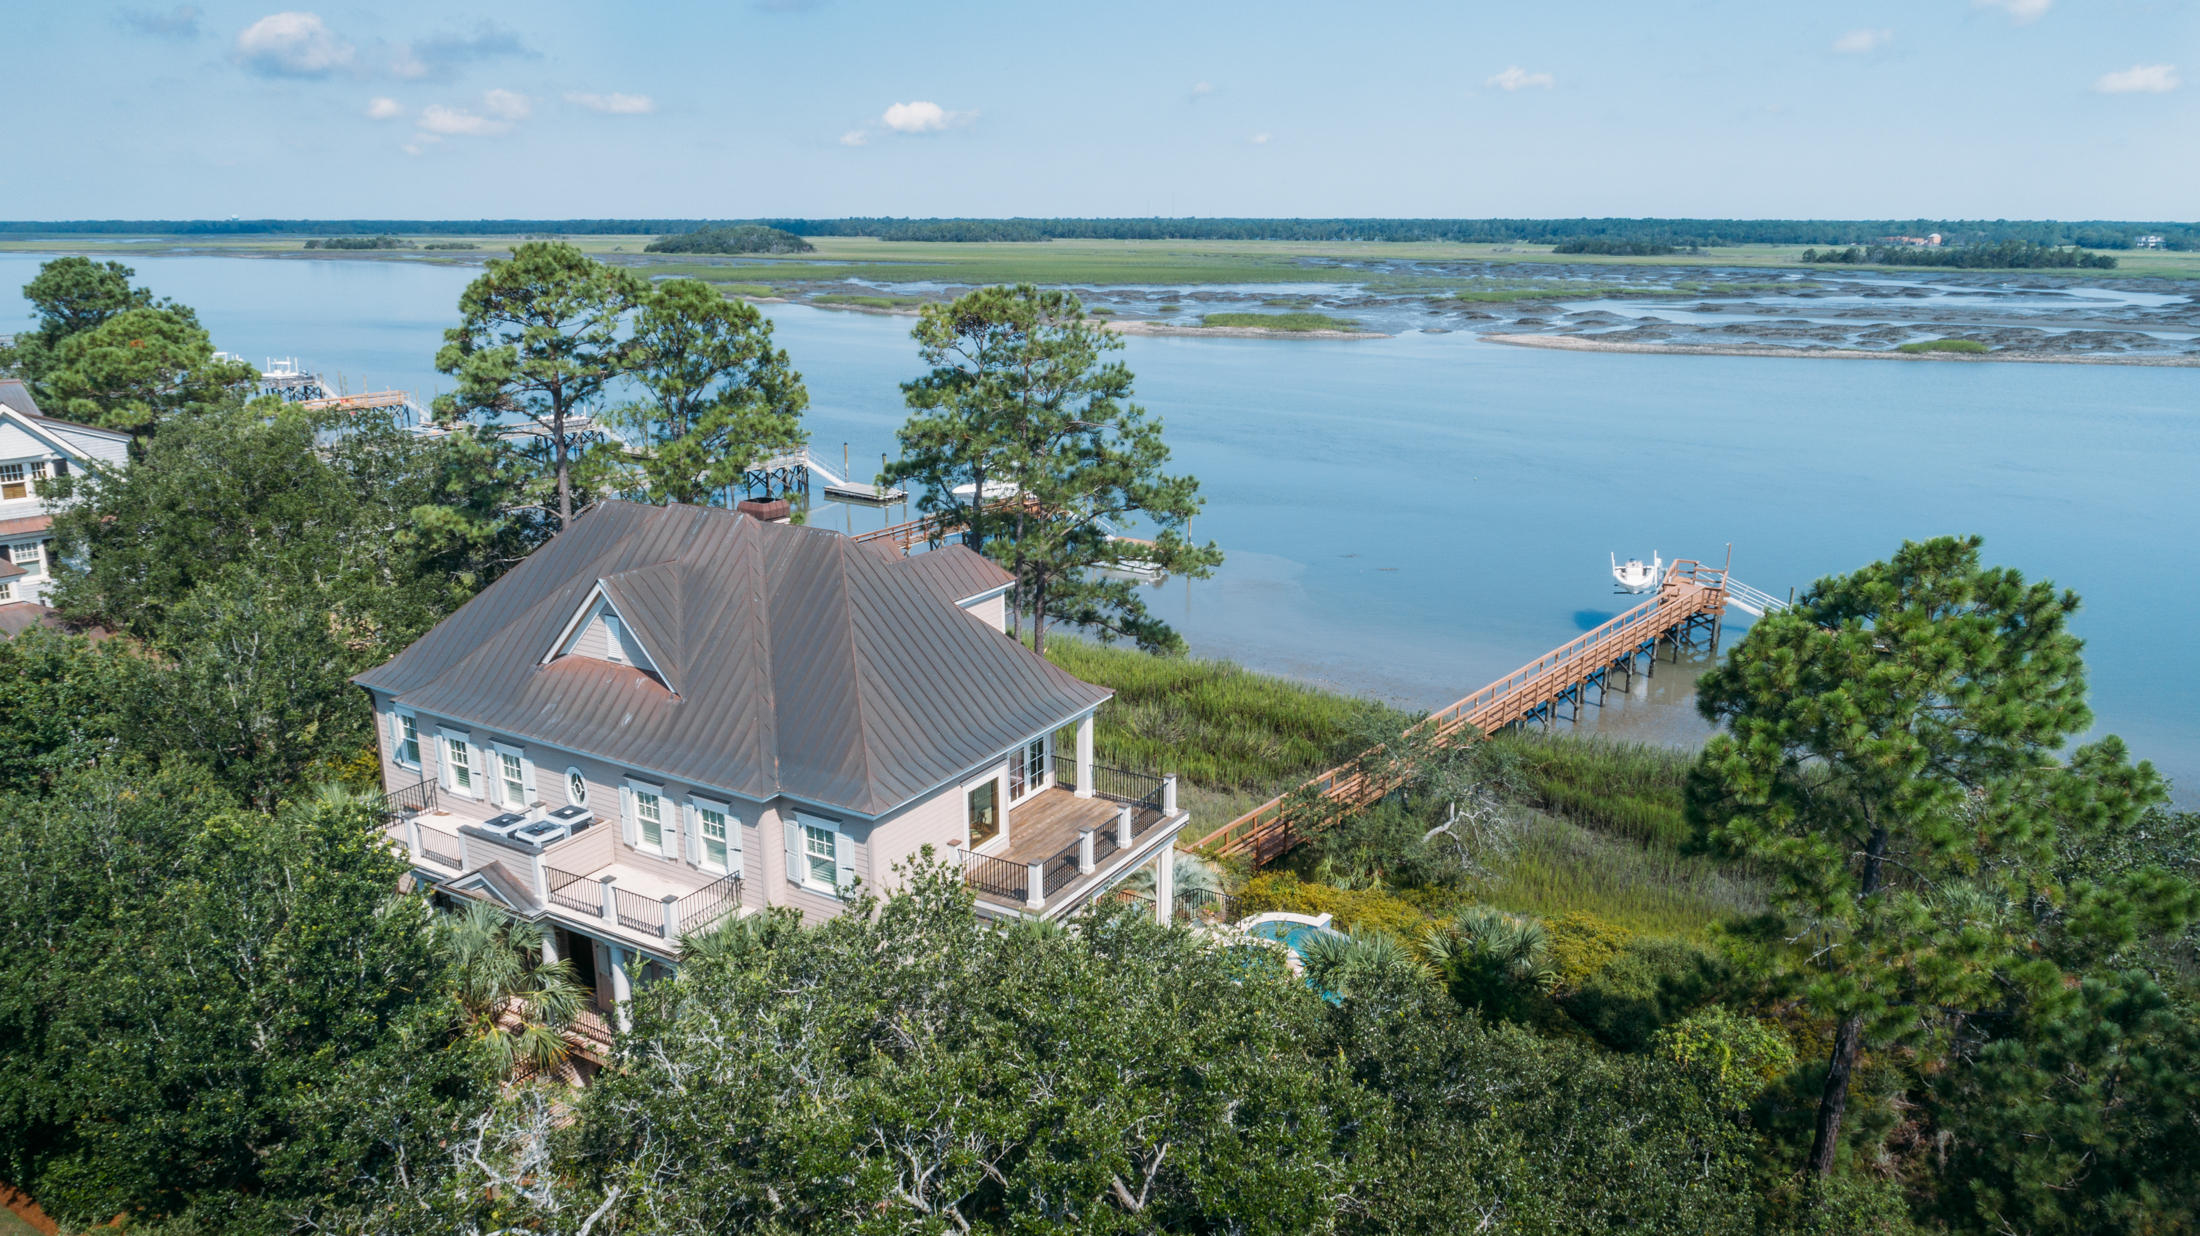 Kiawah Island Homes For Sale - 29 Rhetts Bluff, Kiawah Island, SC - 7